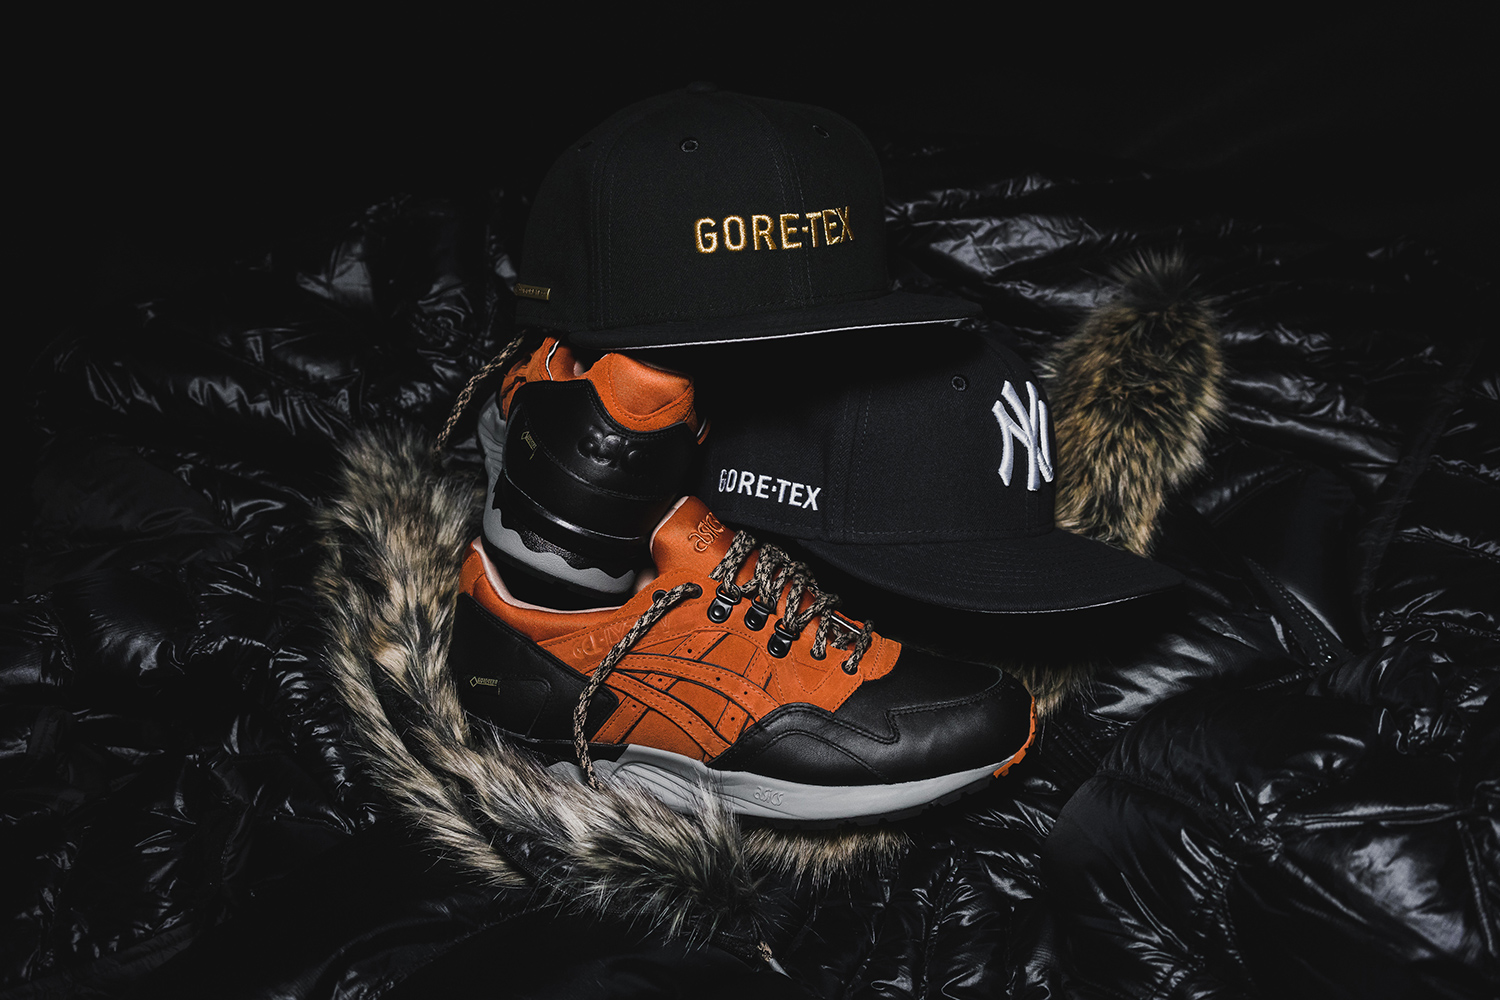 Packer Shoes, Asics et New Era font équipe pour un pack « GORE-TEX »